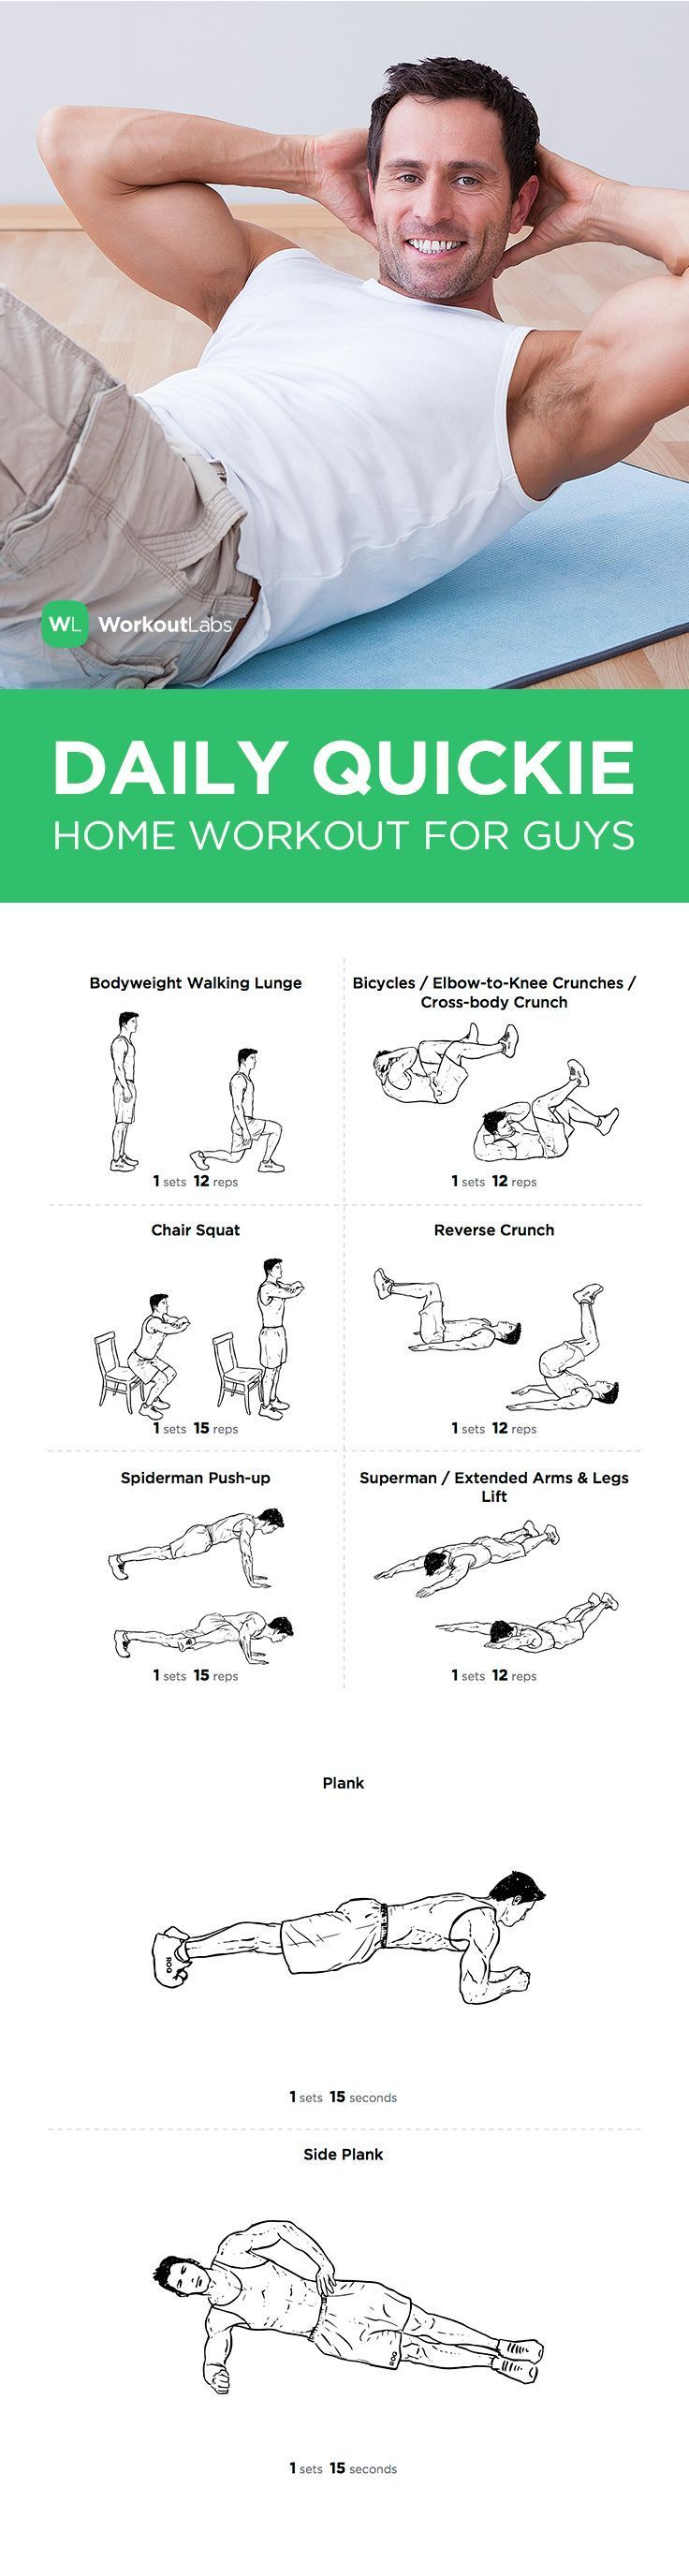 FREE PDF Daily Quickie Essential At Home Workout For Guys Visit Wlabsme 1tuD3Ci To Download